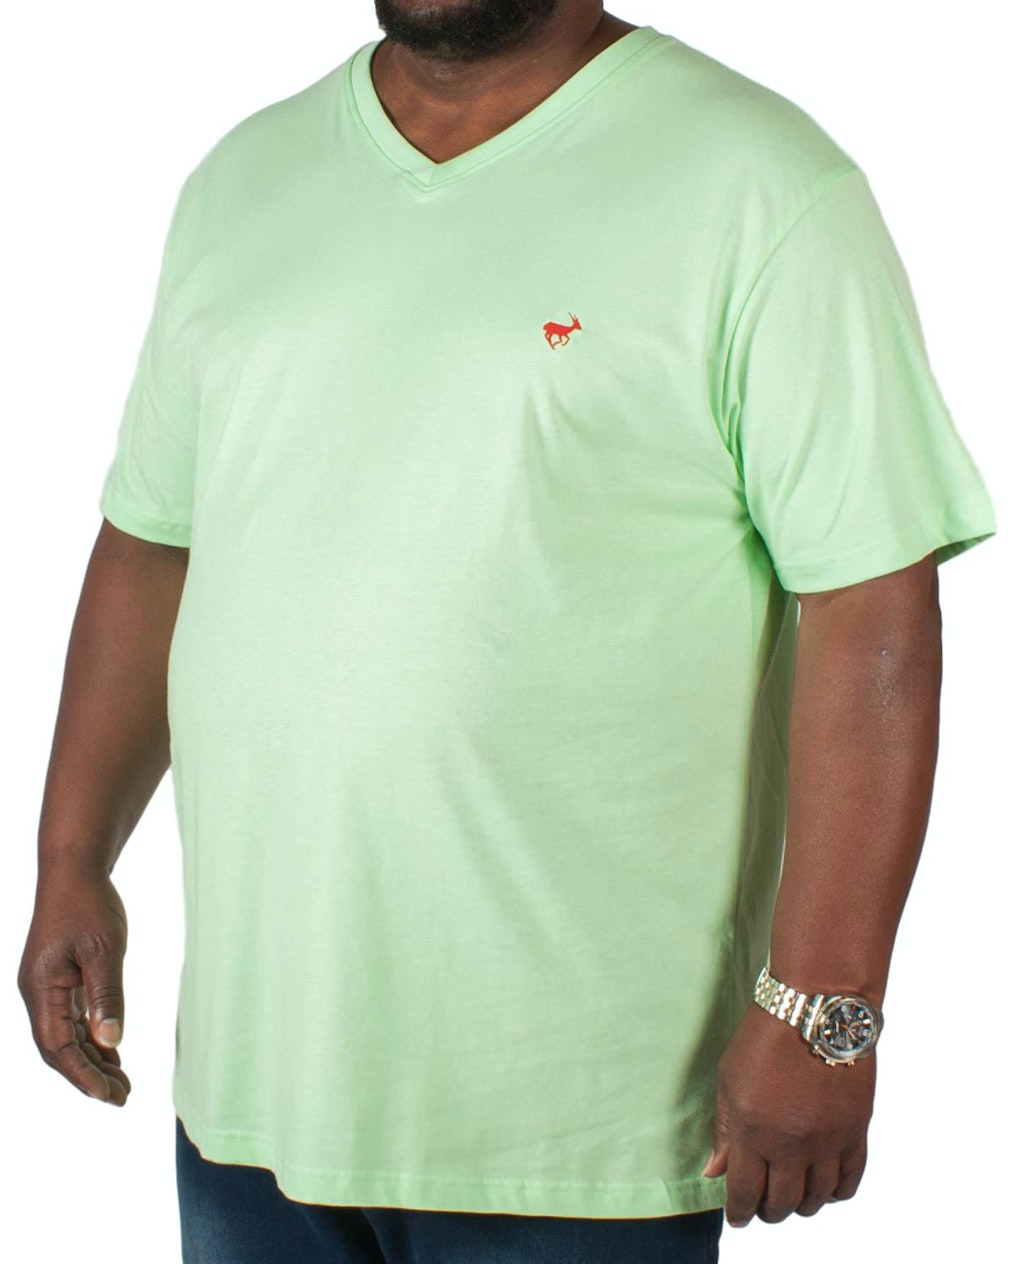 Bigdude Signature V-Neck T-Shirt Green